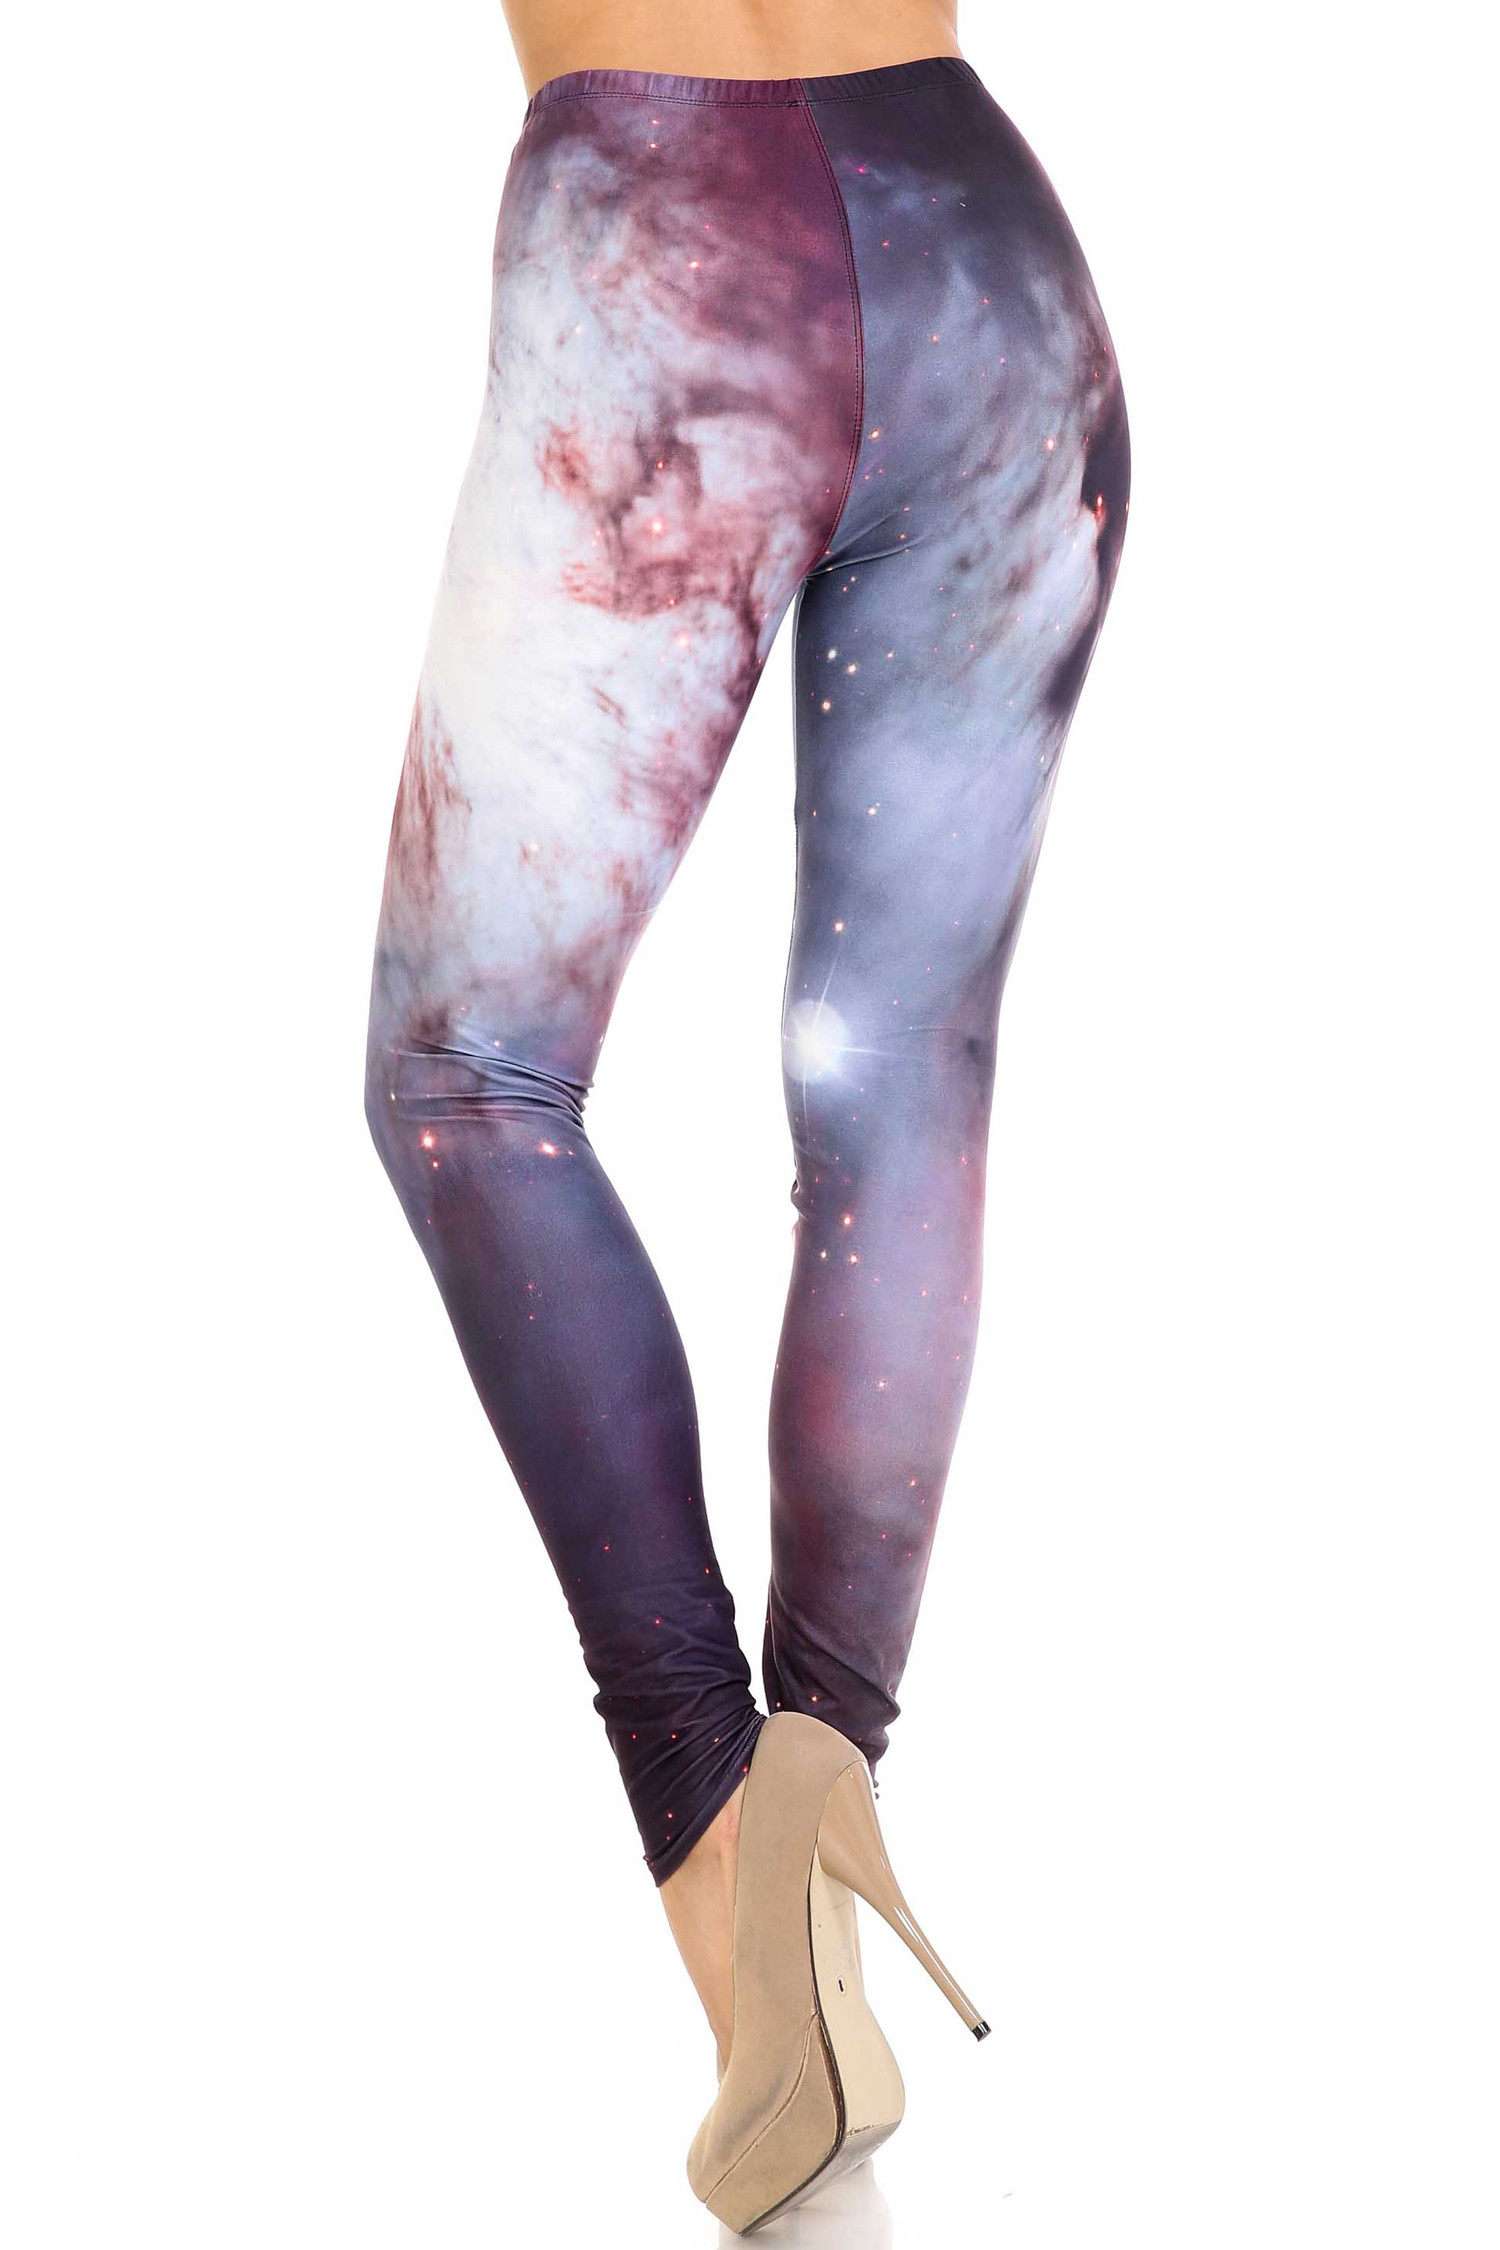 Creamy Soft Black Galaxy Plus Size Leggings - USA Fashion™